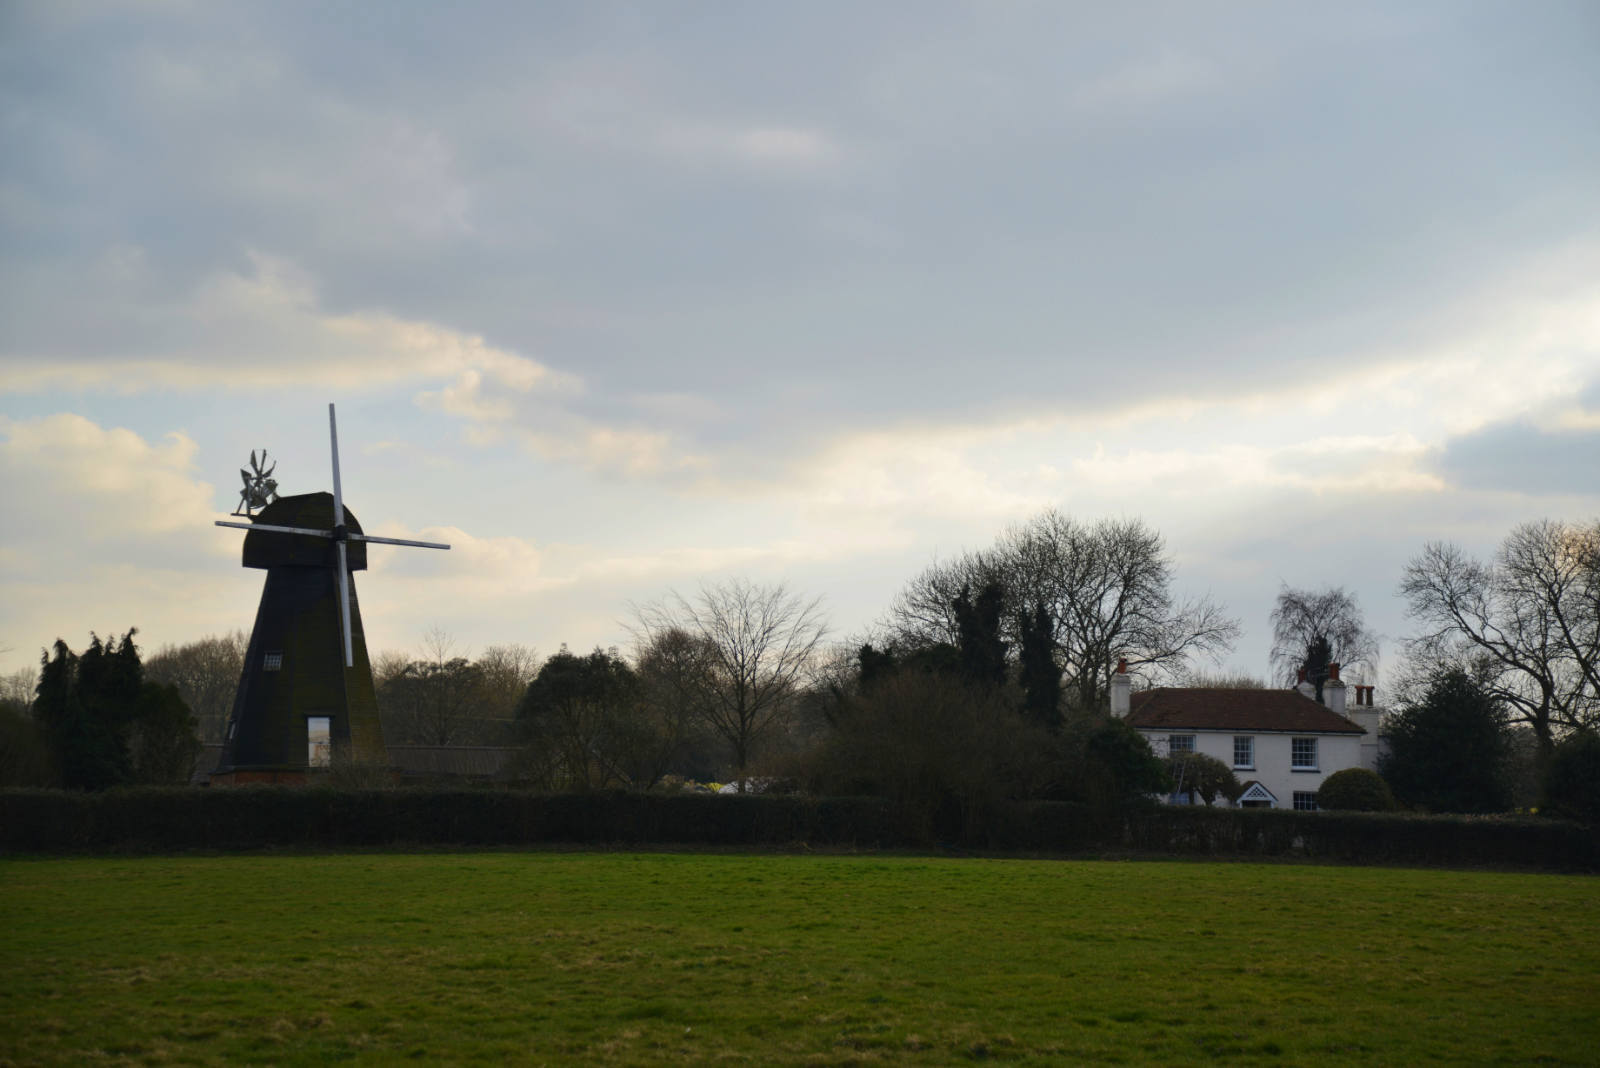 A windmill in West Kingsdown, Kent